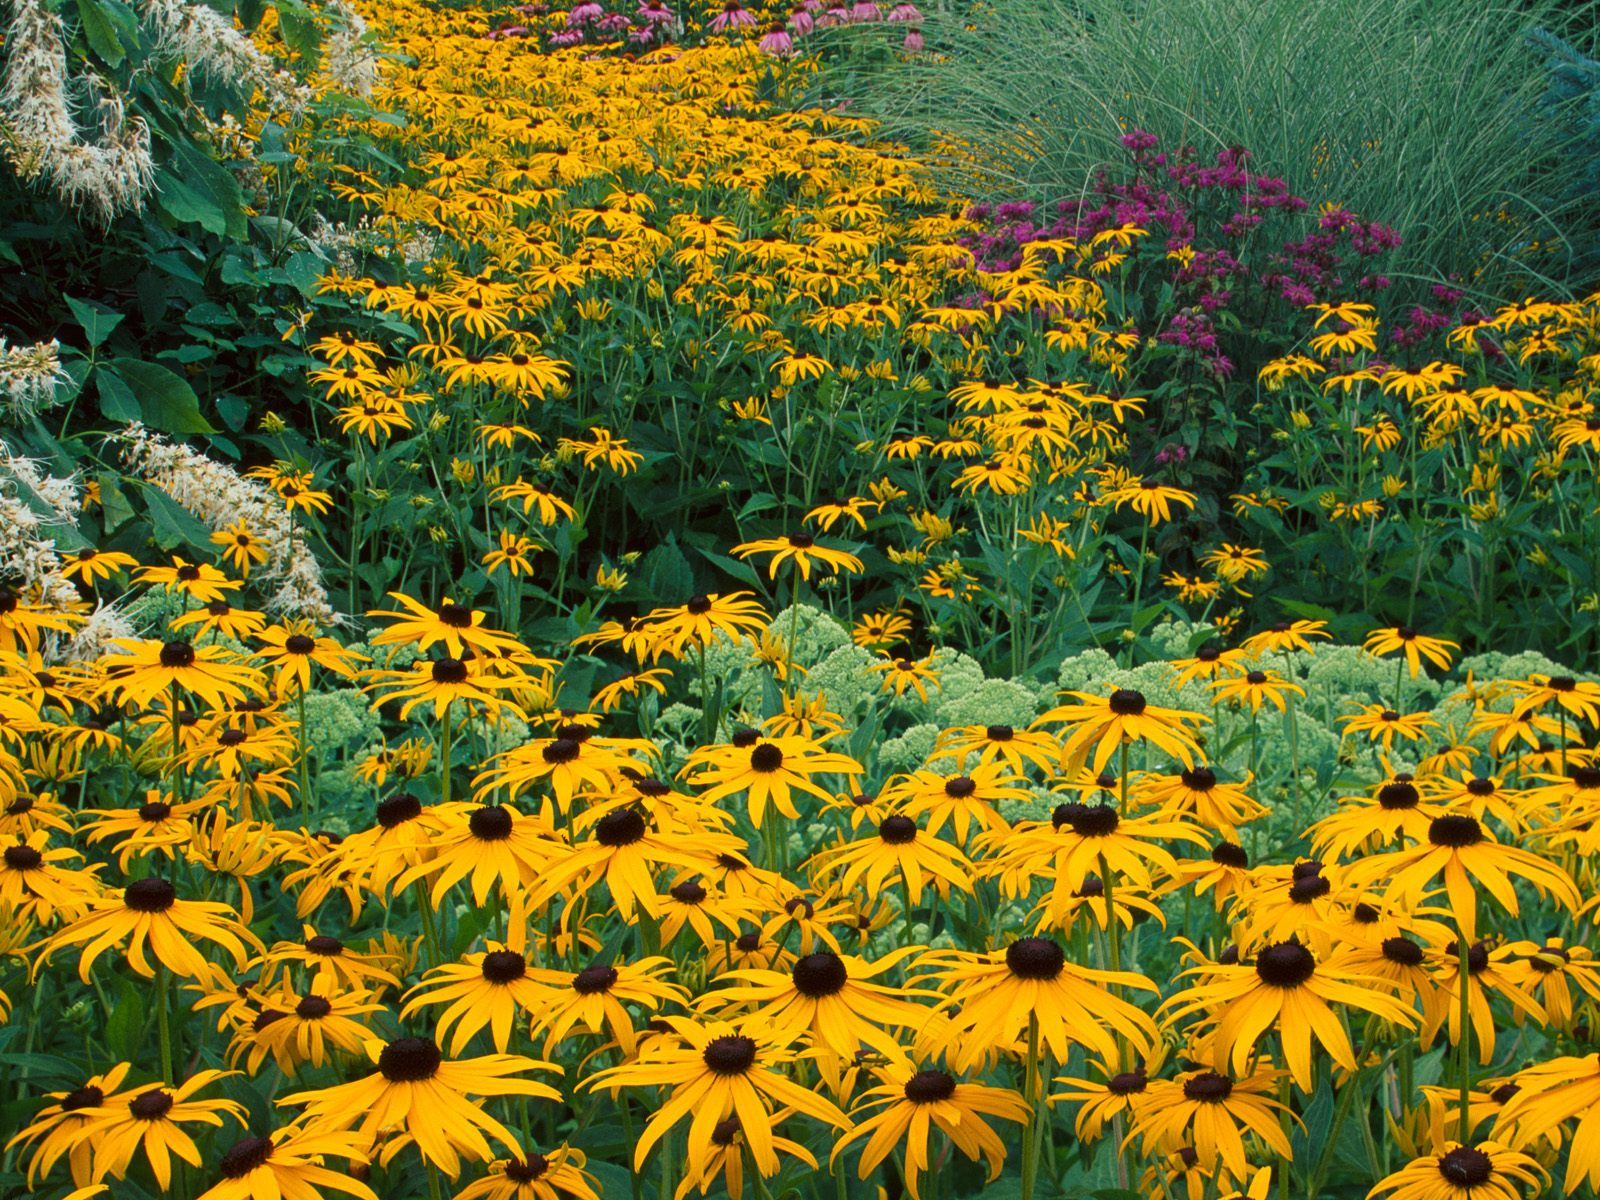 Black-eyed Susans, Holden Arboretum, Ohio